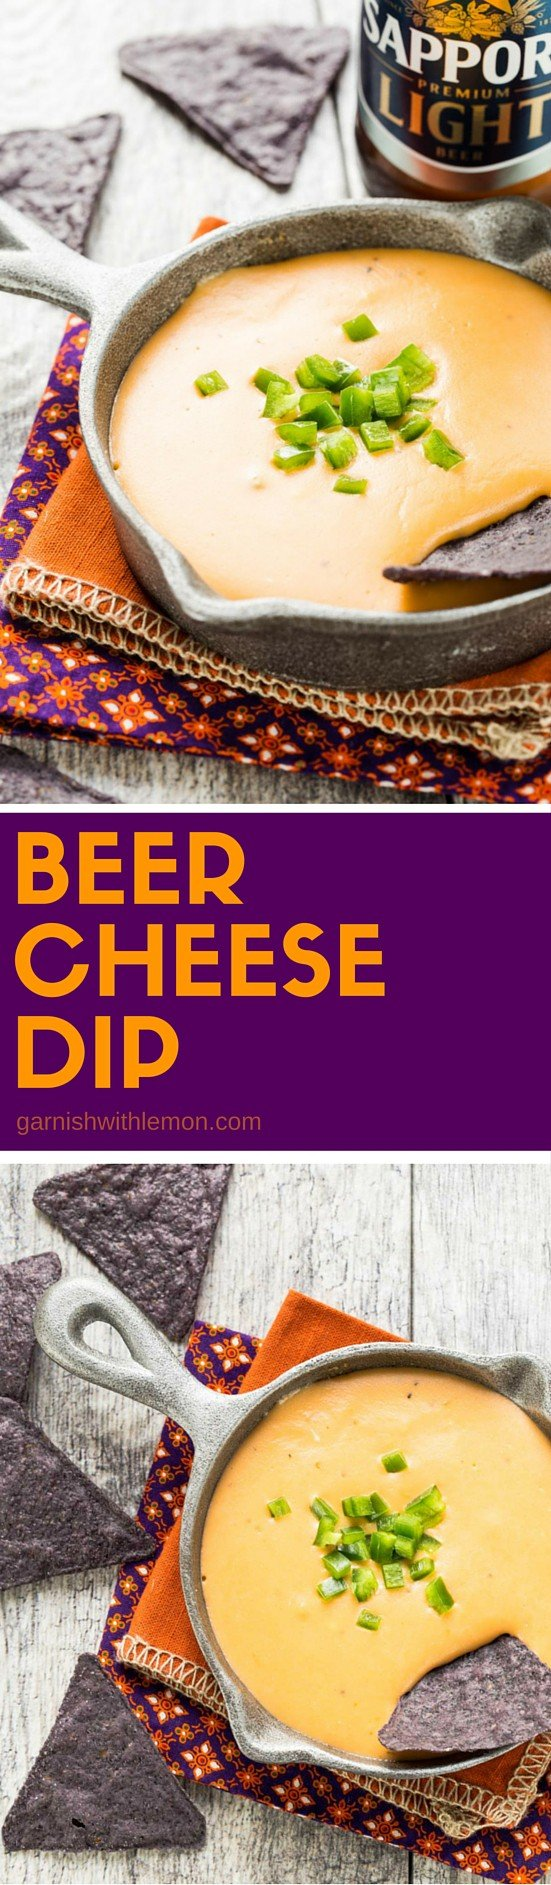 Who can say no to this cheese goodness? This easy Beer Cheese Dip recipe is one of my favorites!